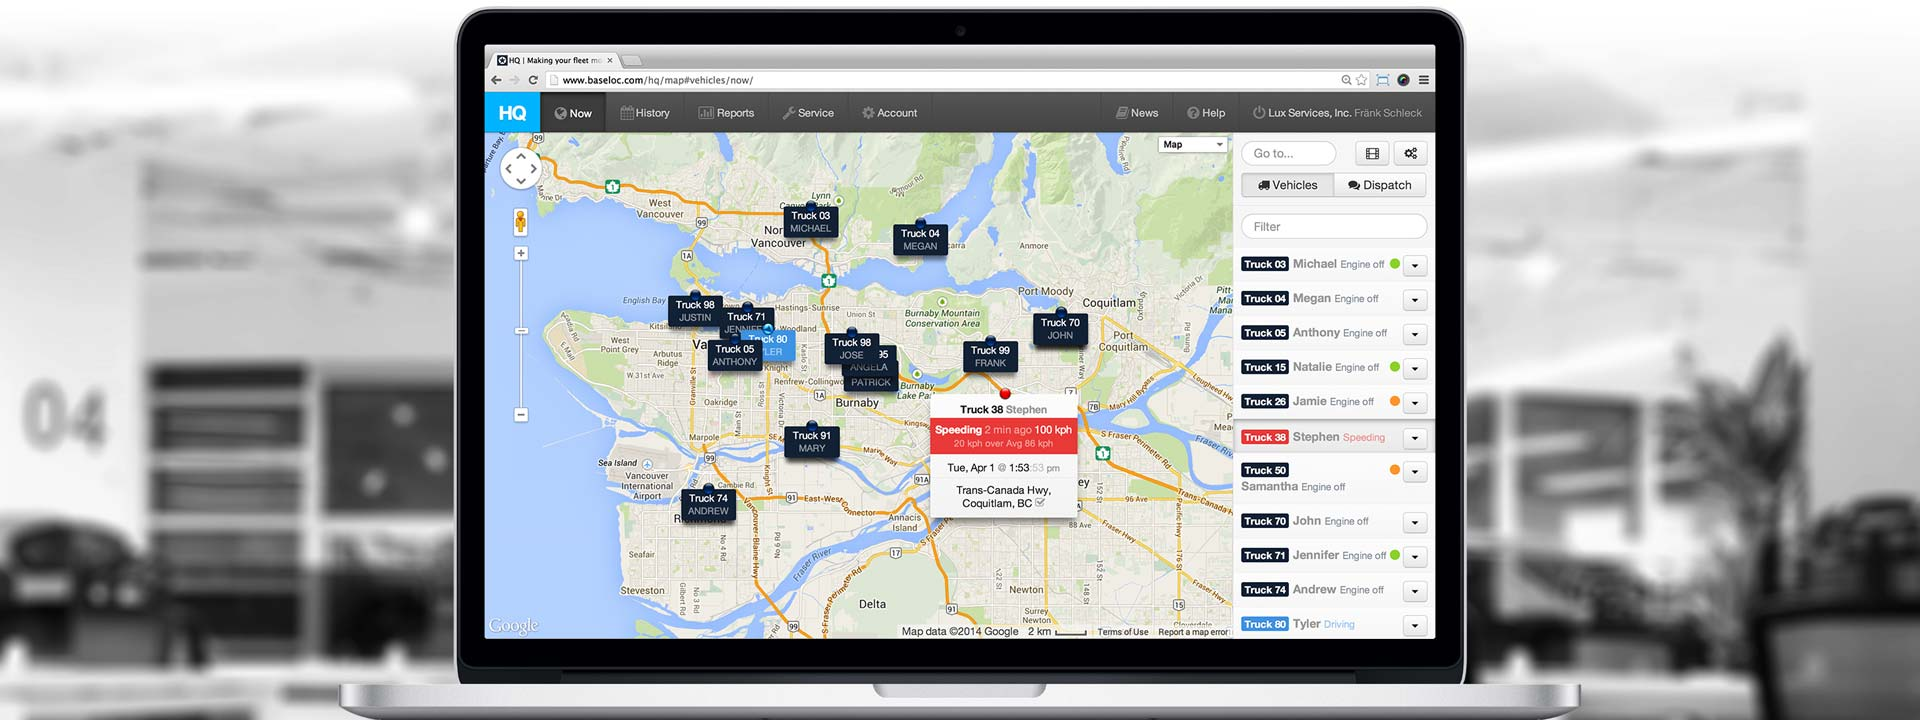 GPS POLICE | Vehicle tracking and fleet management